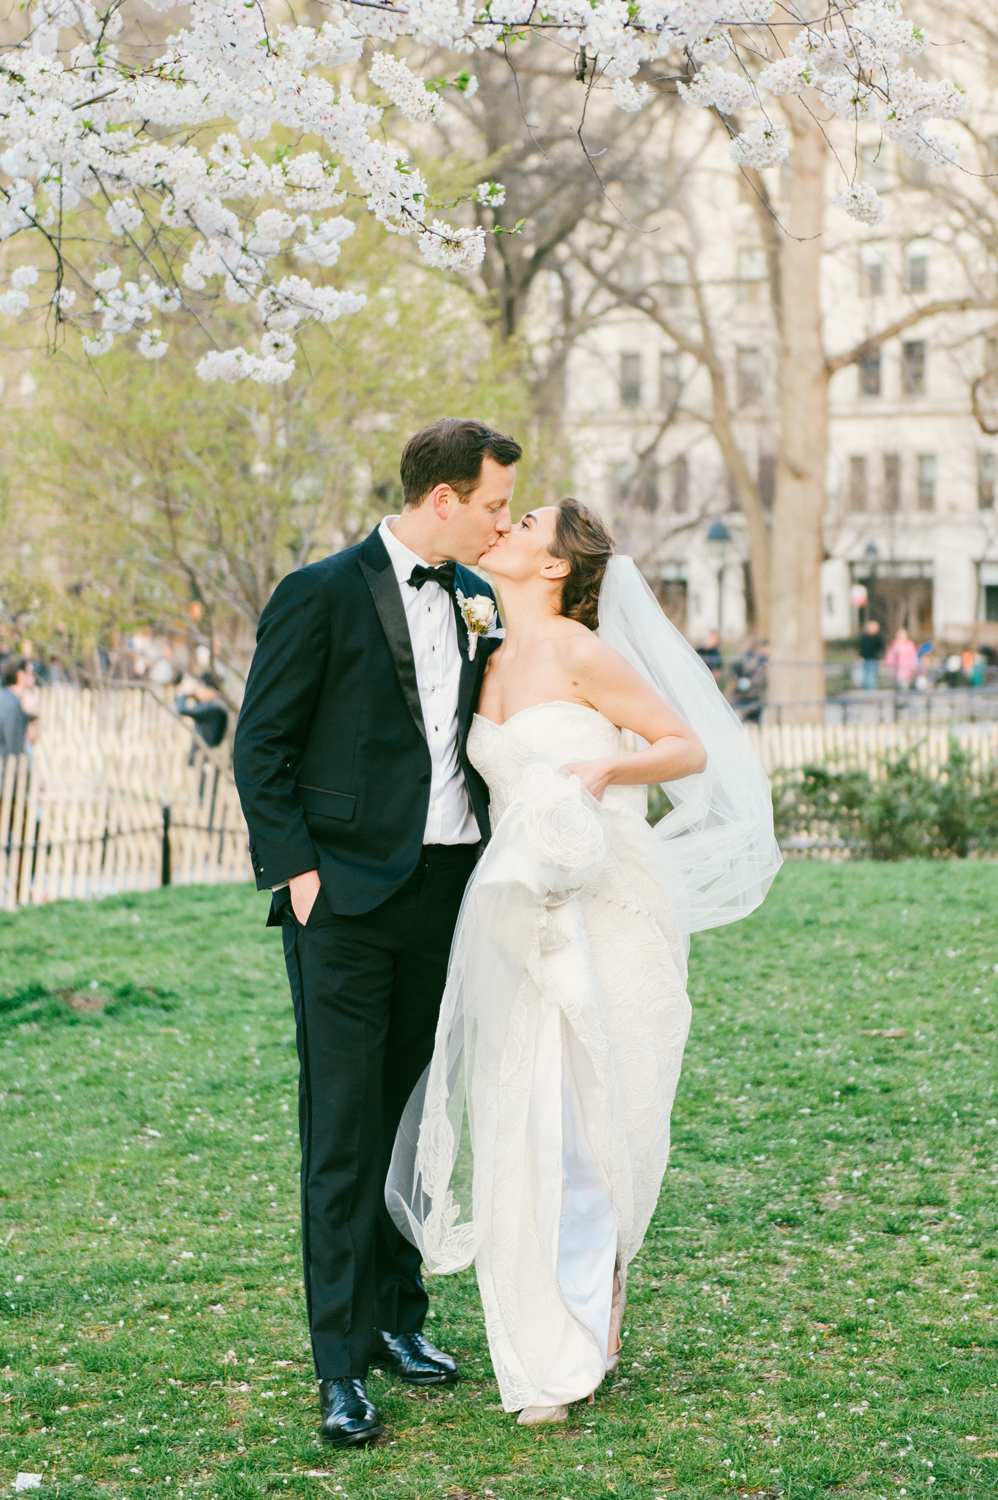 ManhattanPenthouse.WashingtonSquarePark.Wedding.BB.36.jpg